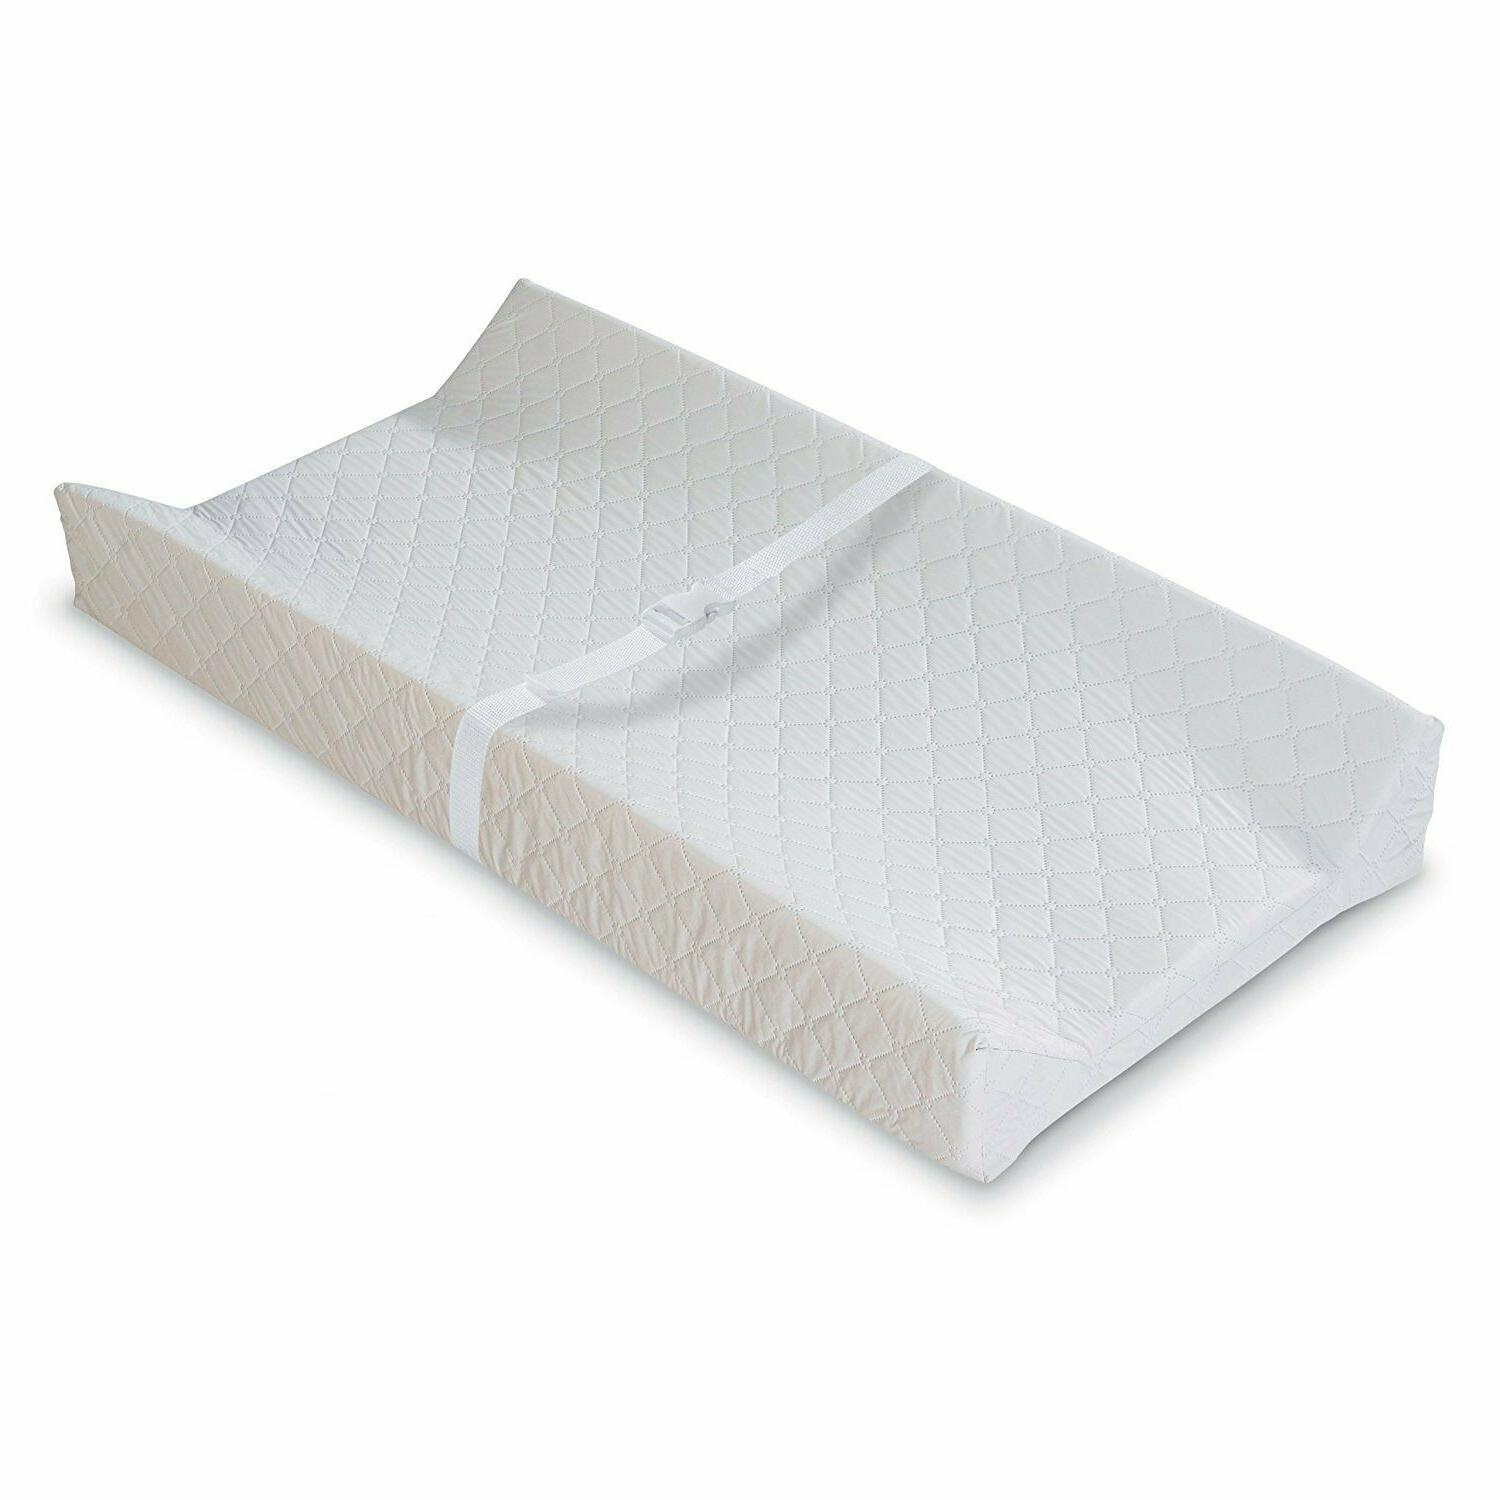 new contoured changing pad white usa seller